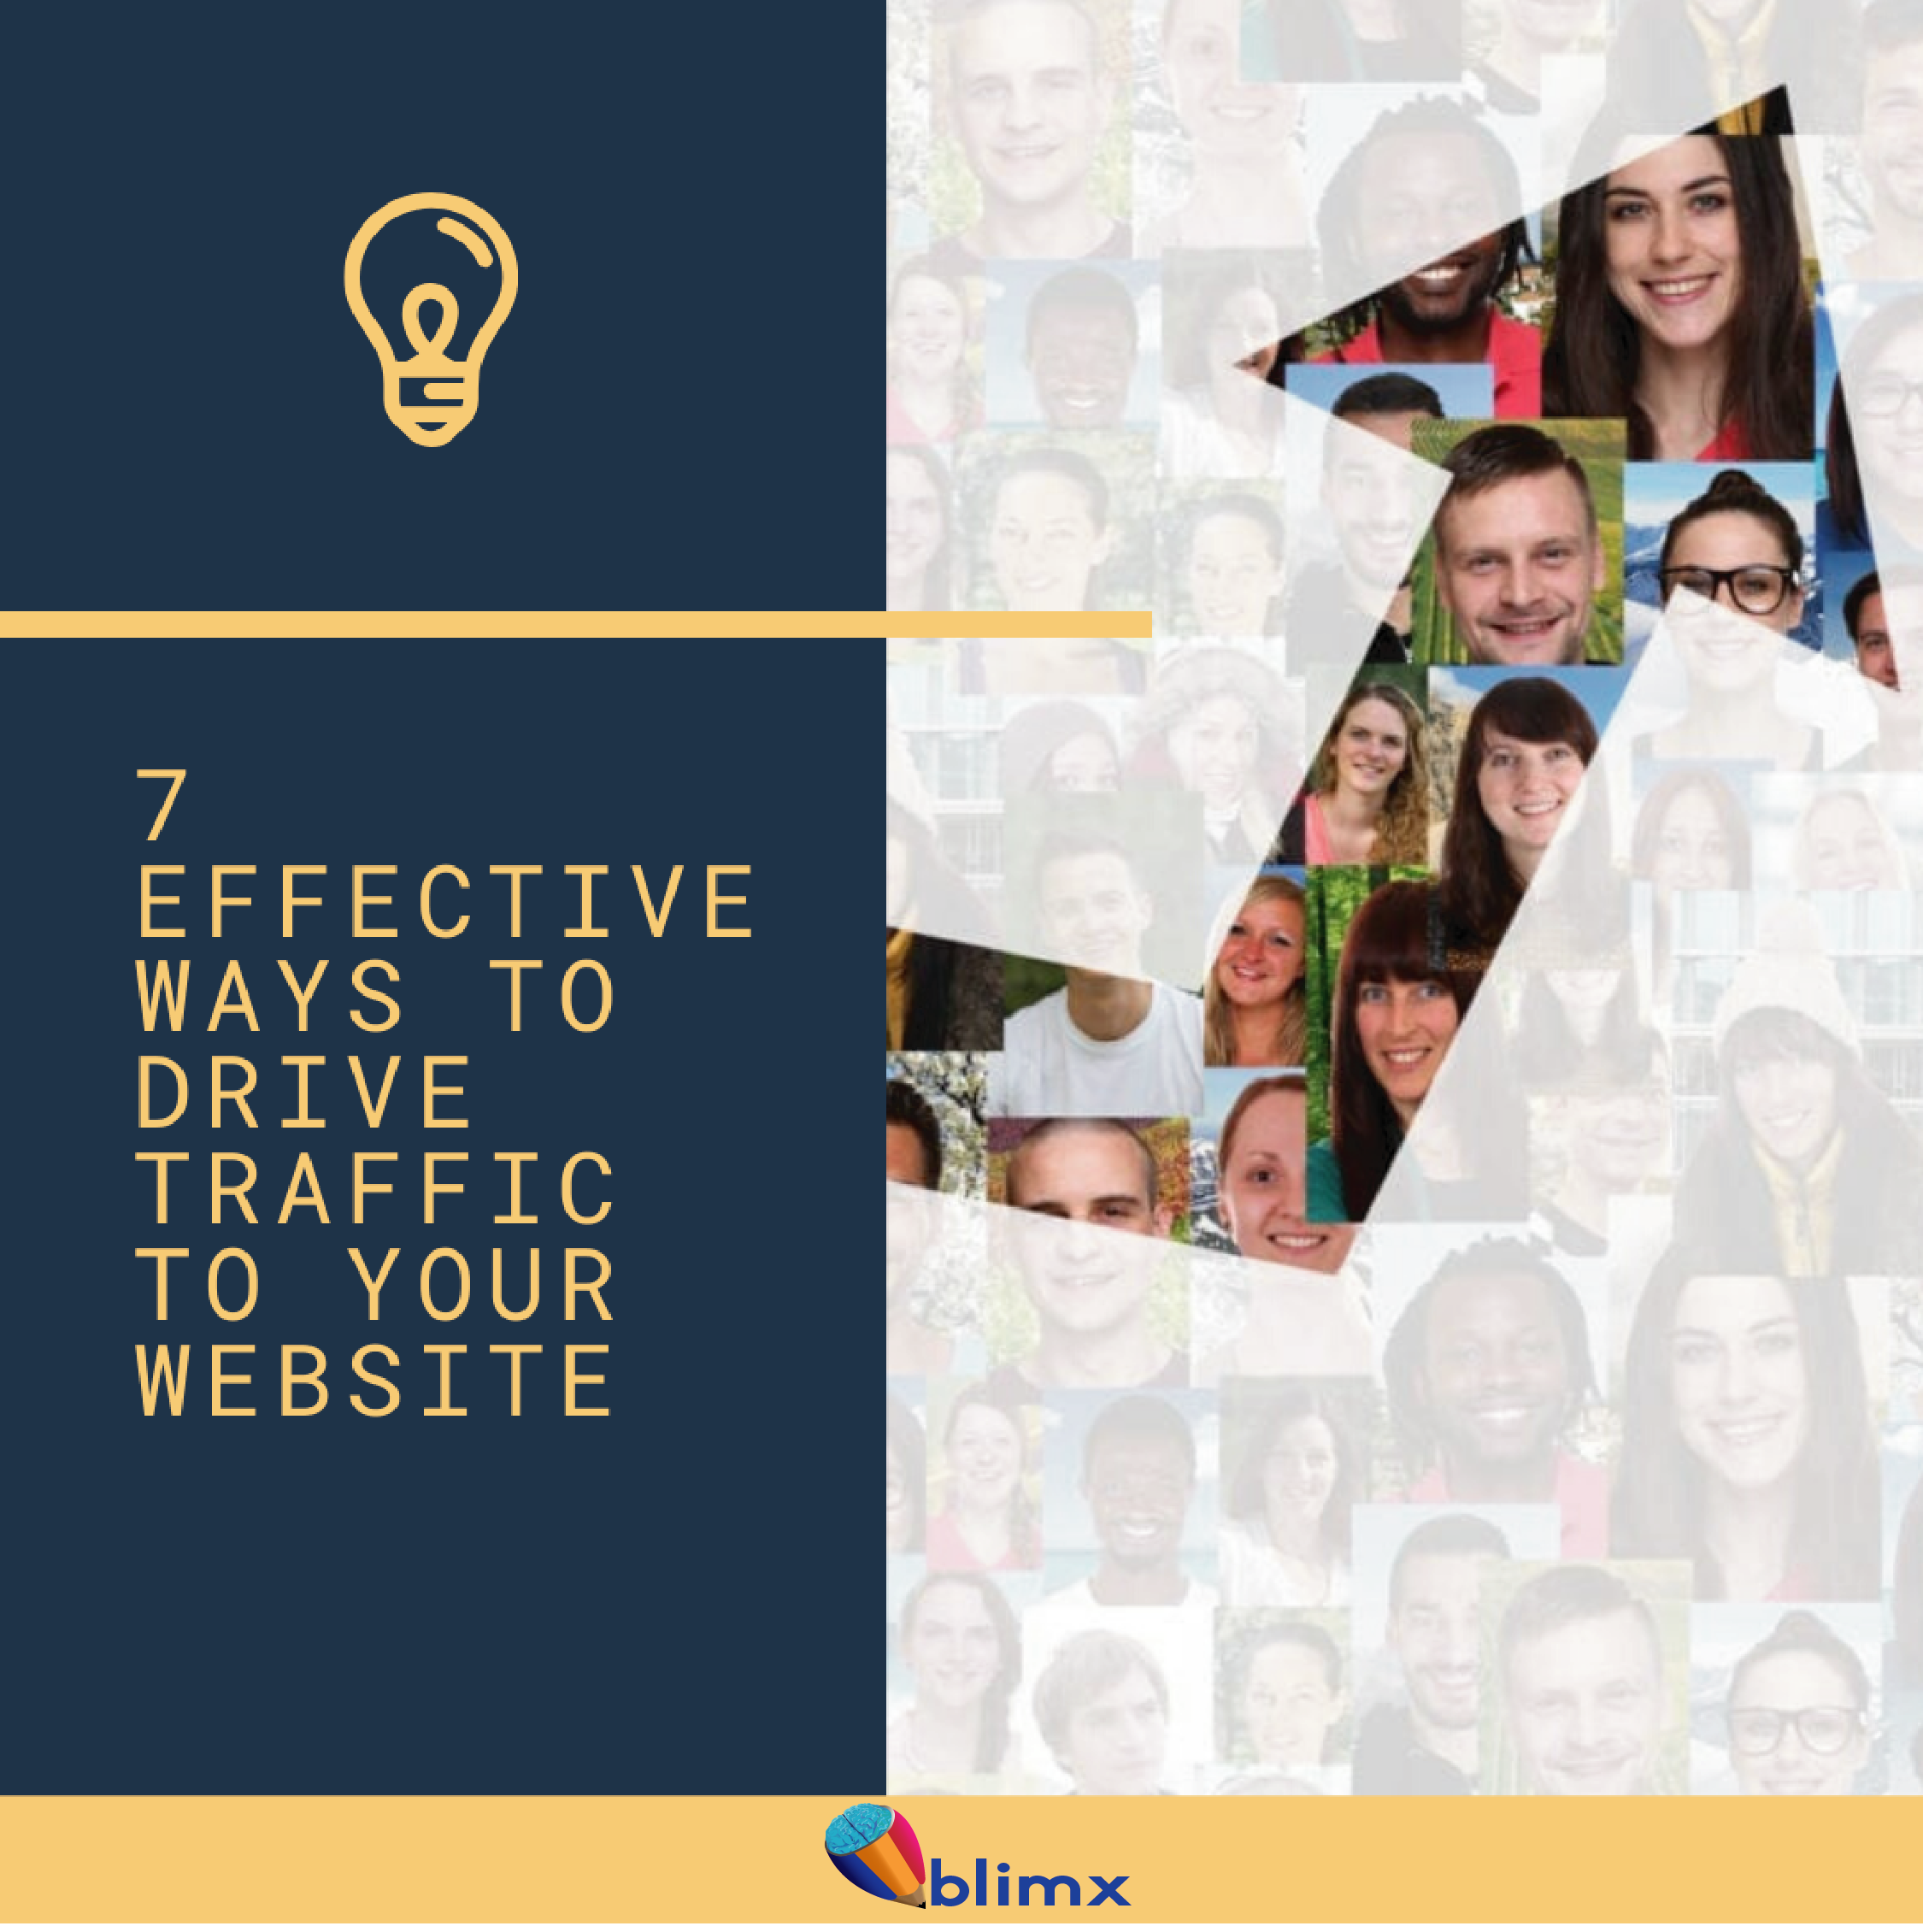 7 Effective Ways to Drive Traffic to Your Website